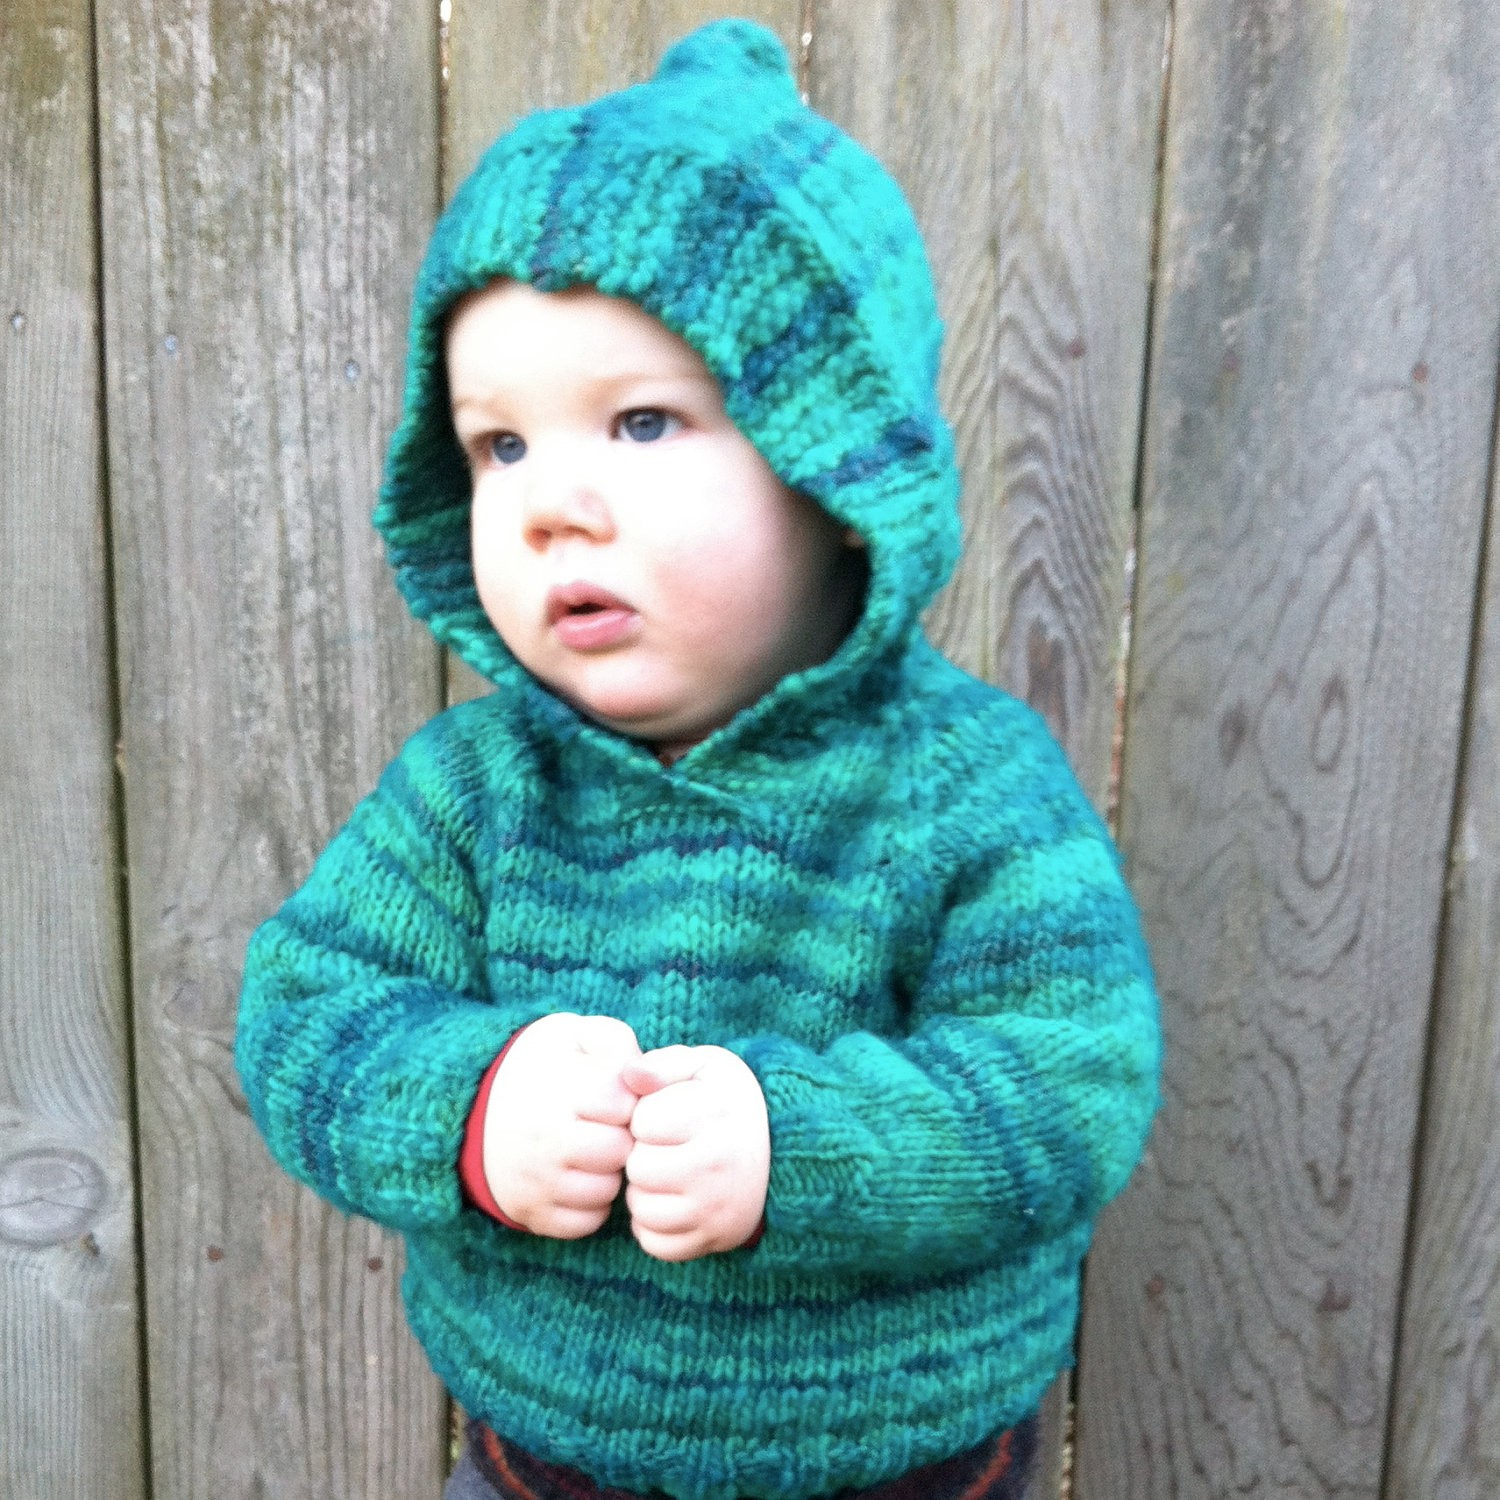 Knitting Pattern Baby Cardigan Newborn : Knitting Patterns Baby Sweaters Hoods images